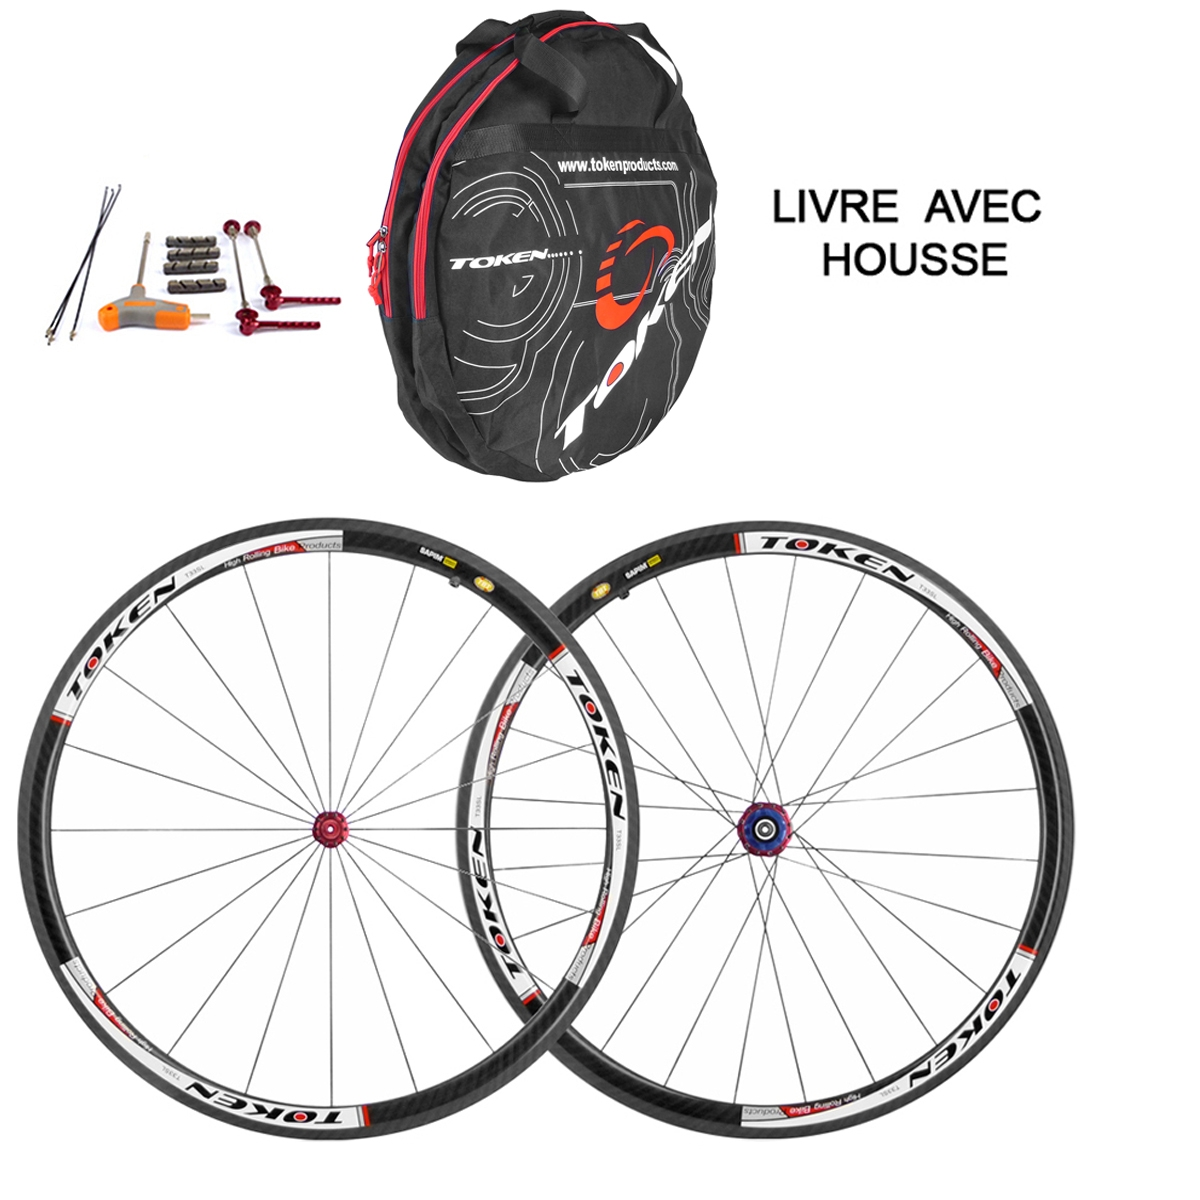 Roues Token route carbone Campagnolo boyau 1035 Grs